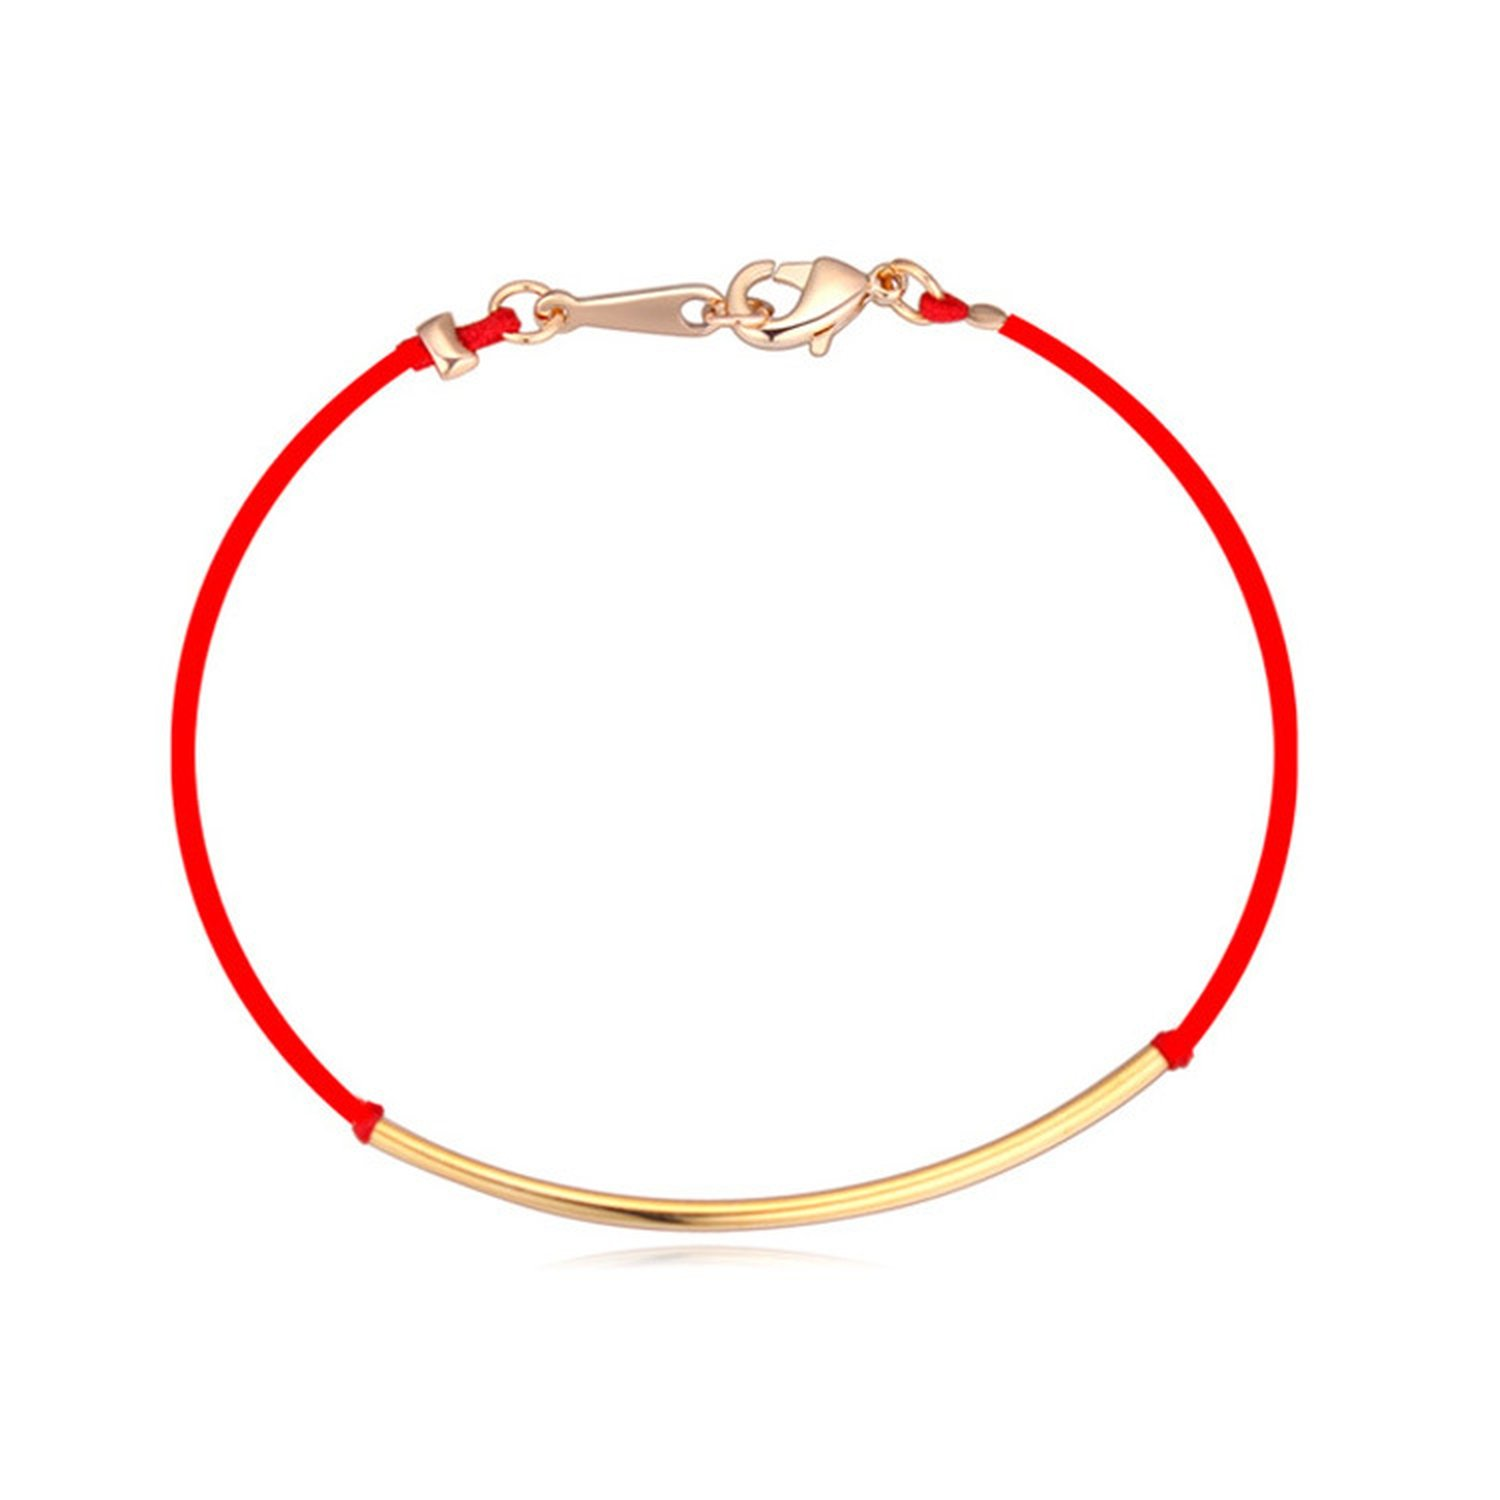 Flower-Bud born red rope braided bracelet high-end gold plated fine jewelry past and present Korean jewelry,Rose Gold by Flower-Bud (Image #7)